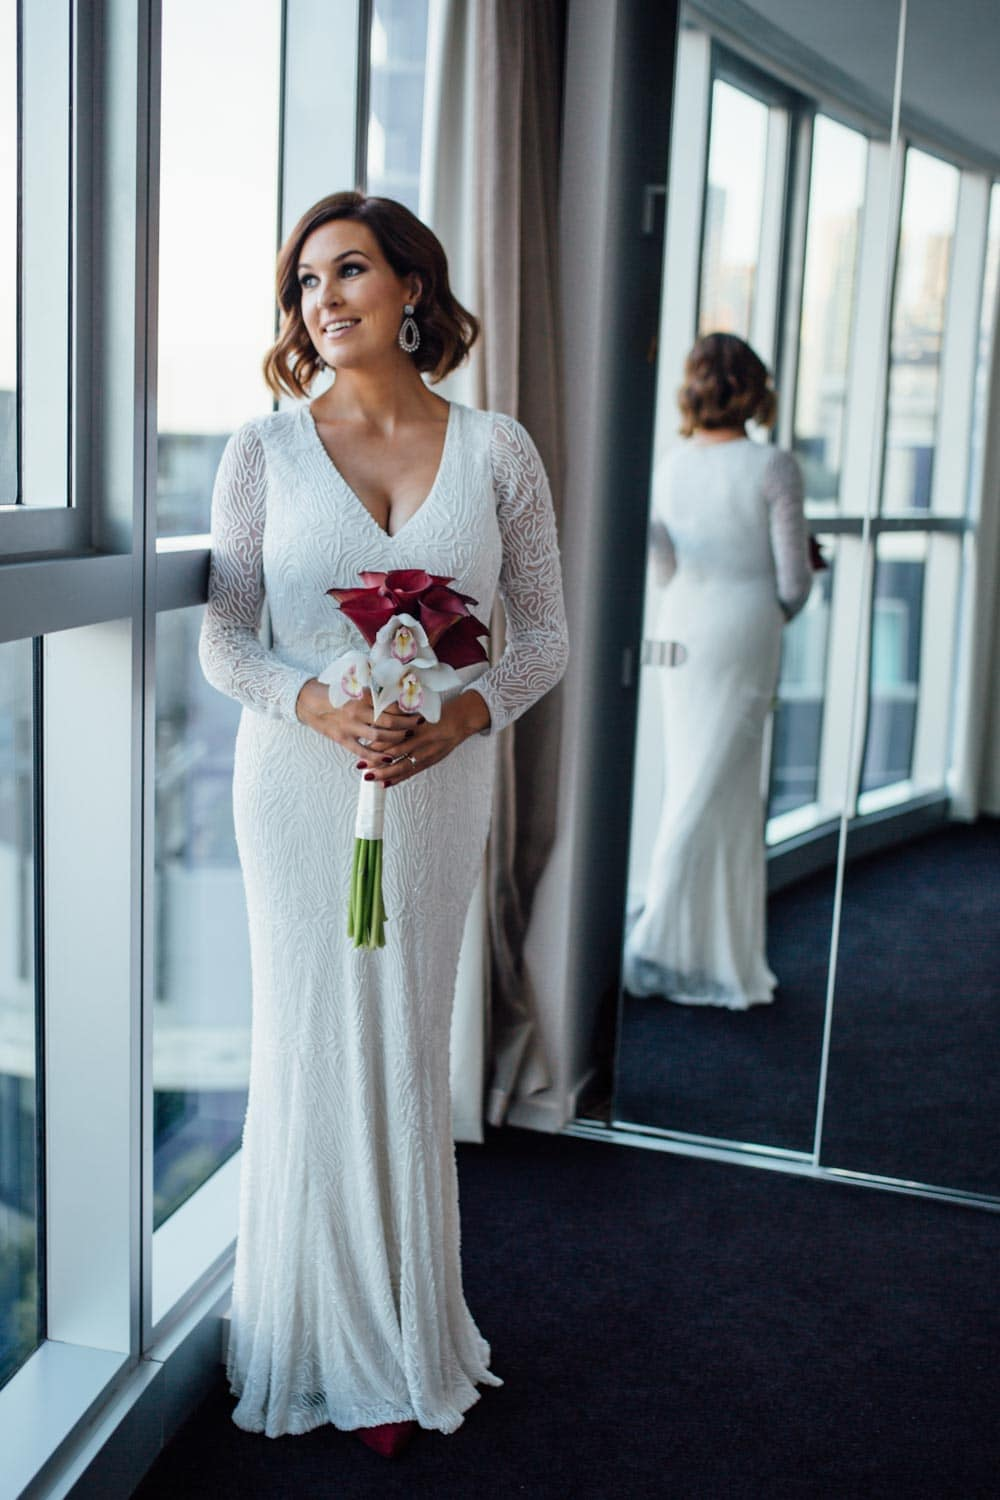 Best Wedding Photography Melbourne: Candid, Contemporary Wedding ...